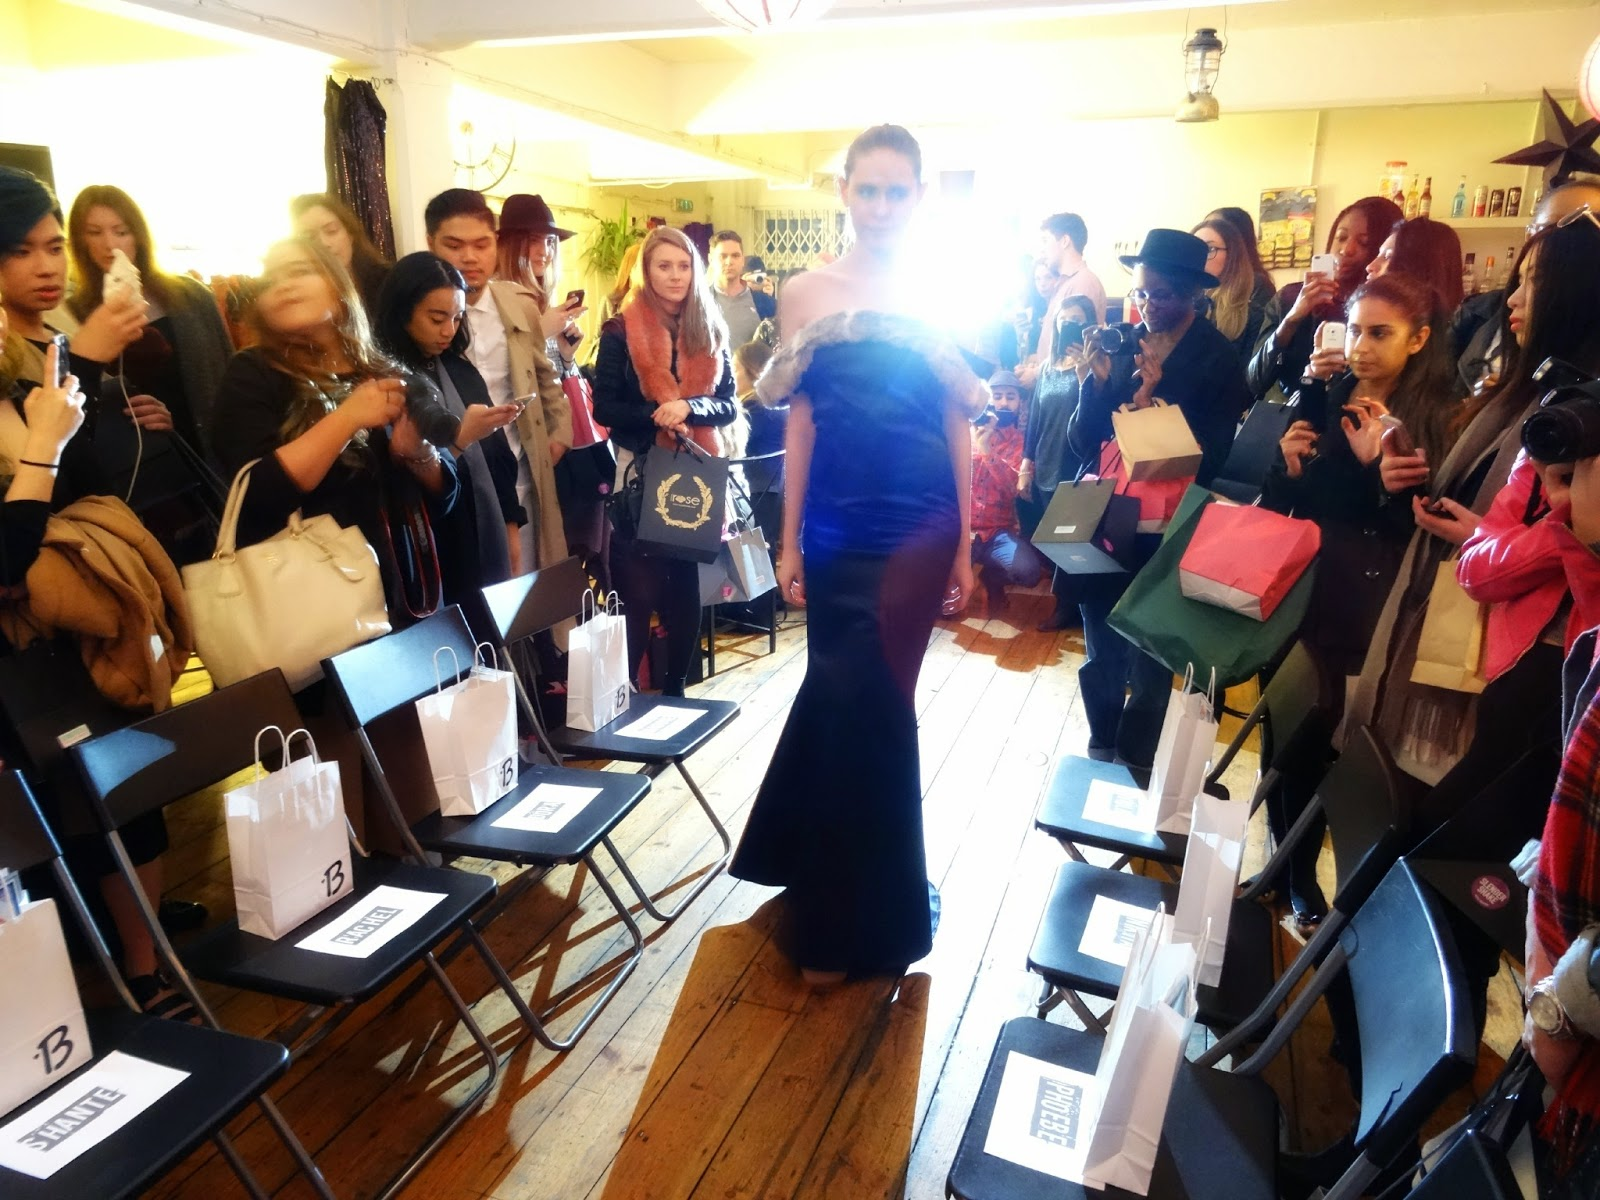 Fashion show at a blogging event